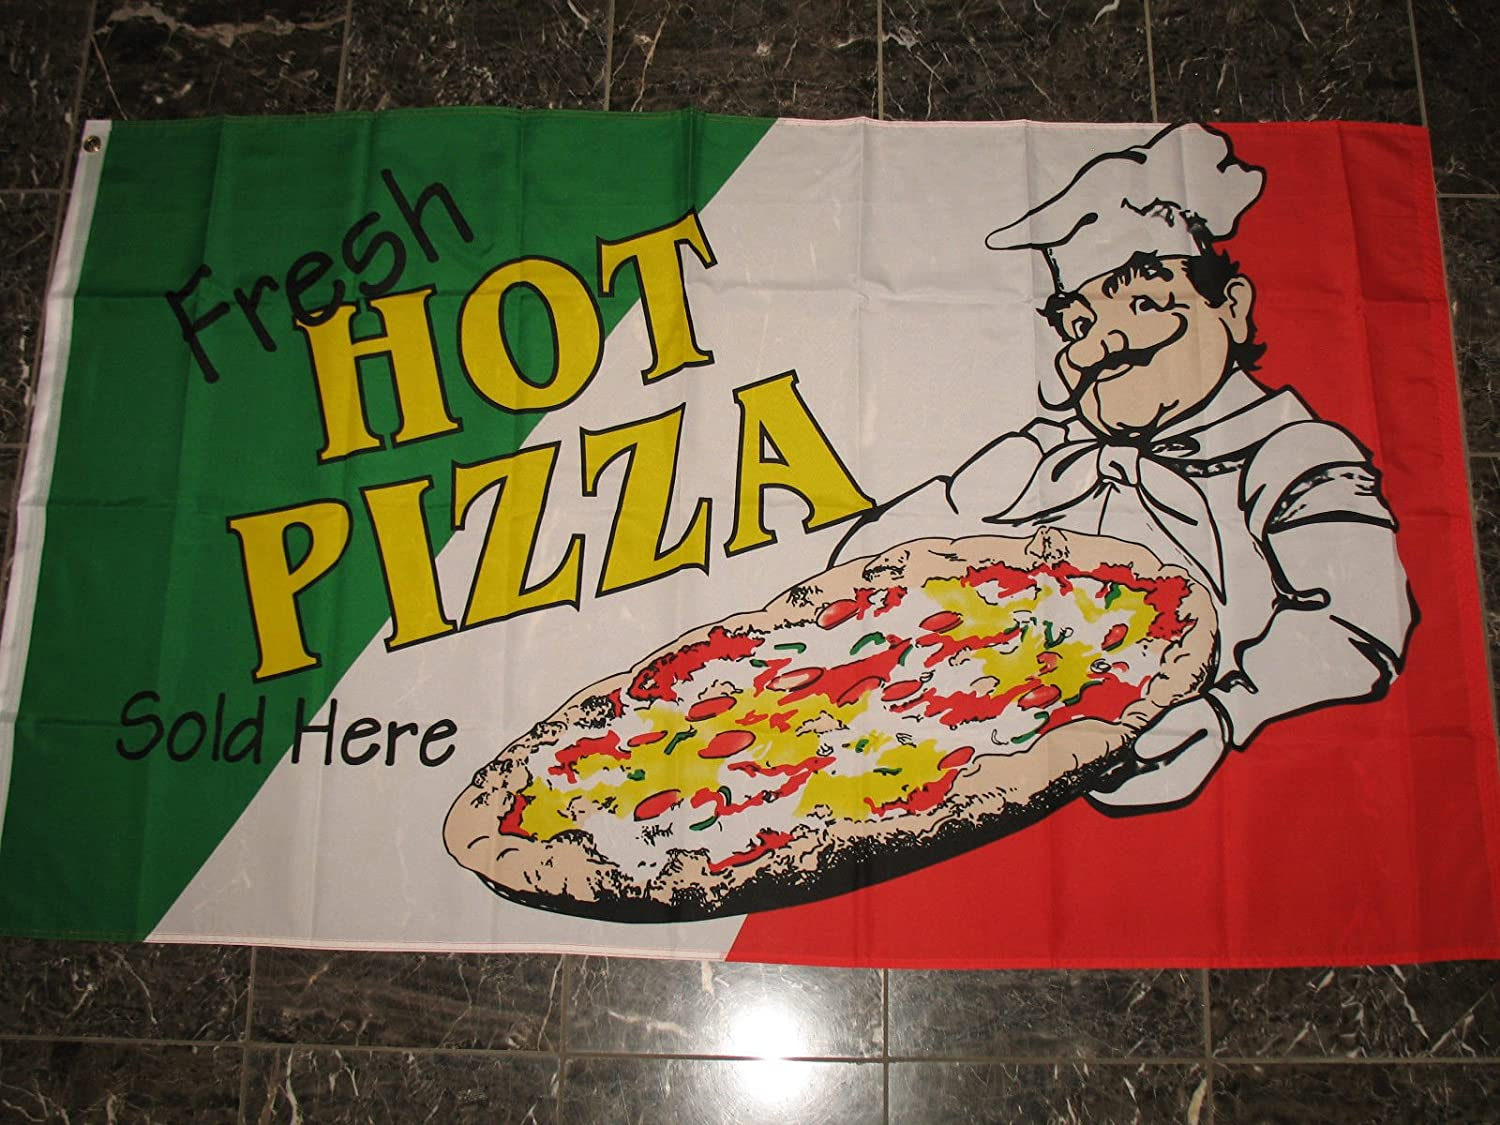 NEW 3X5FT ITALY PIZZA BANNER PRINT SIGN FLAG superior quality